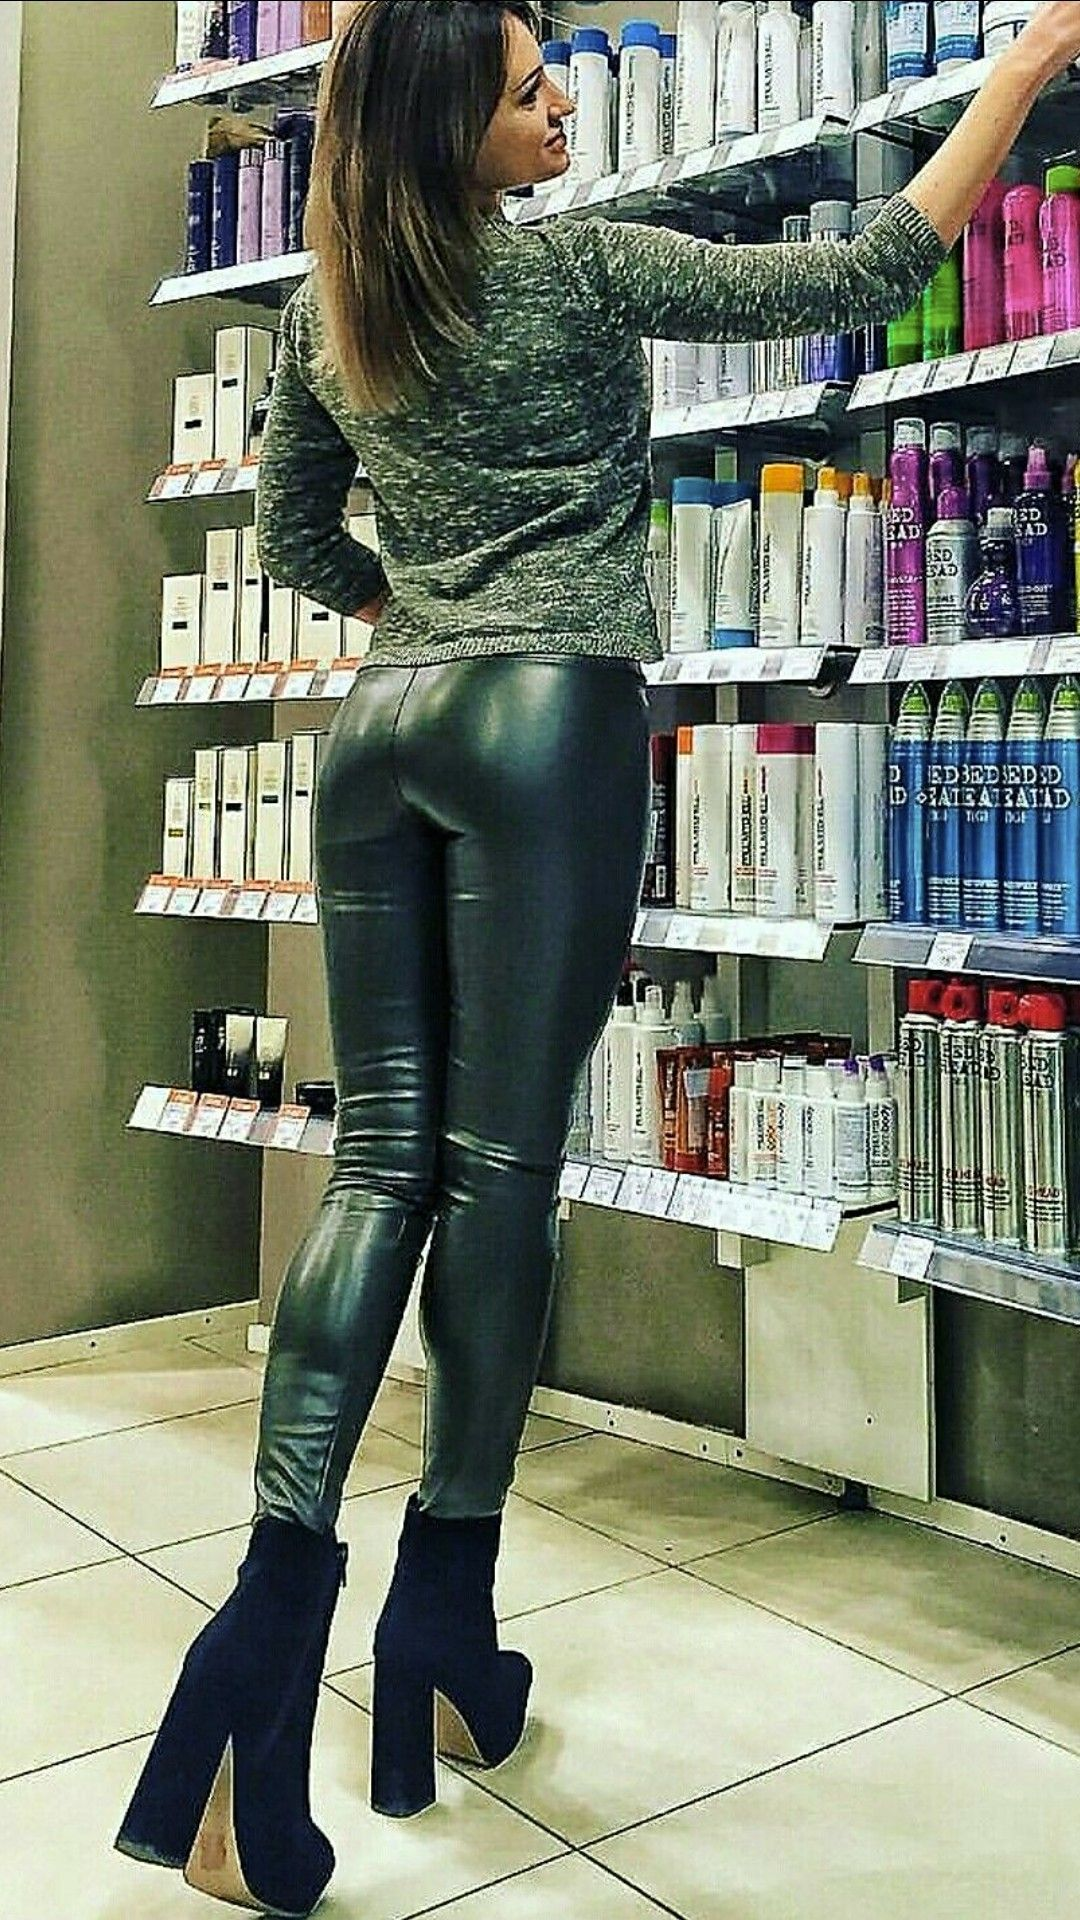 mom in latex. ♛carolyn♛ | ❇ leather, latex, fashion, fetish